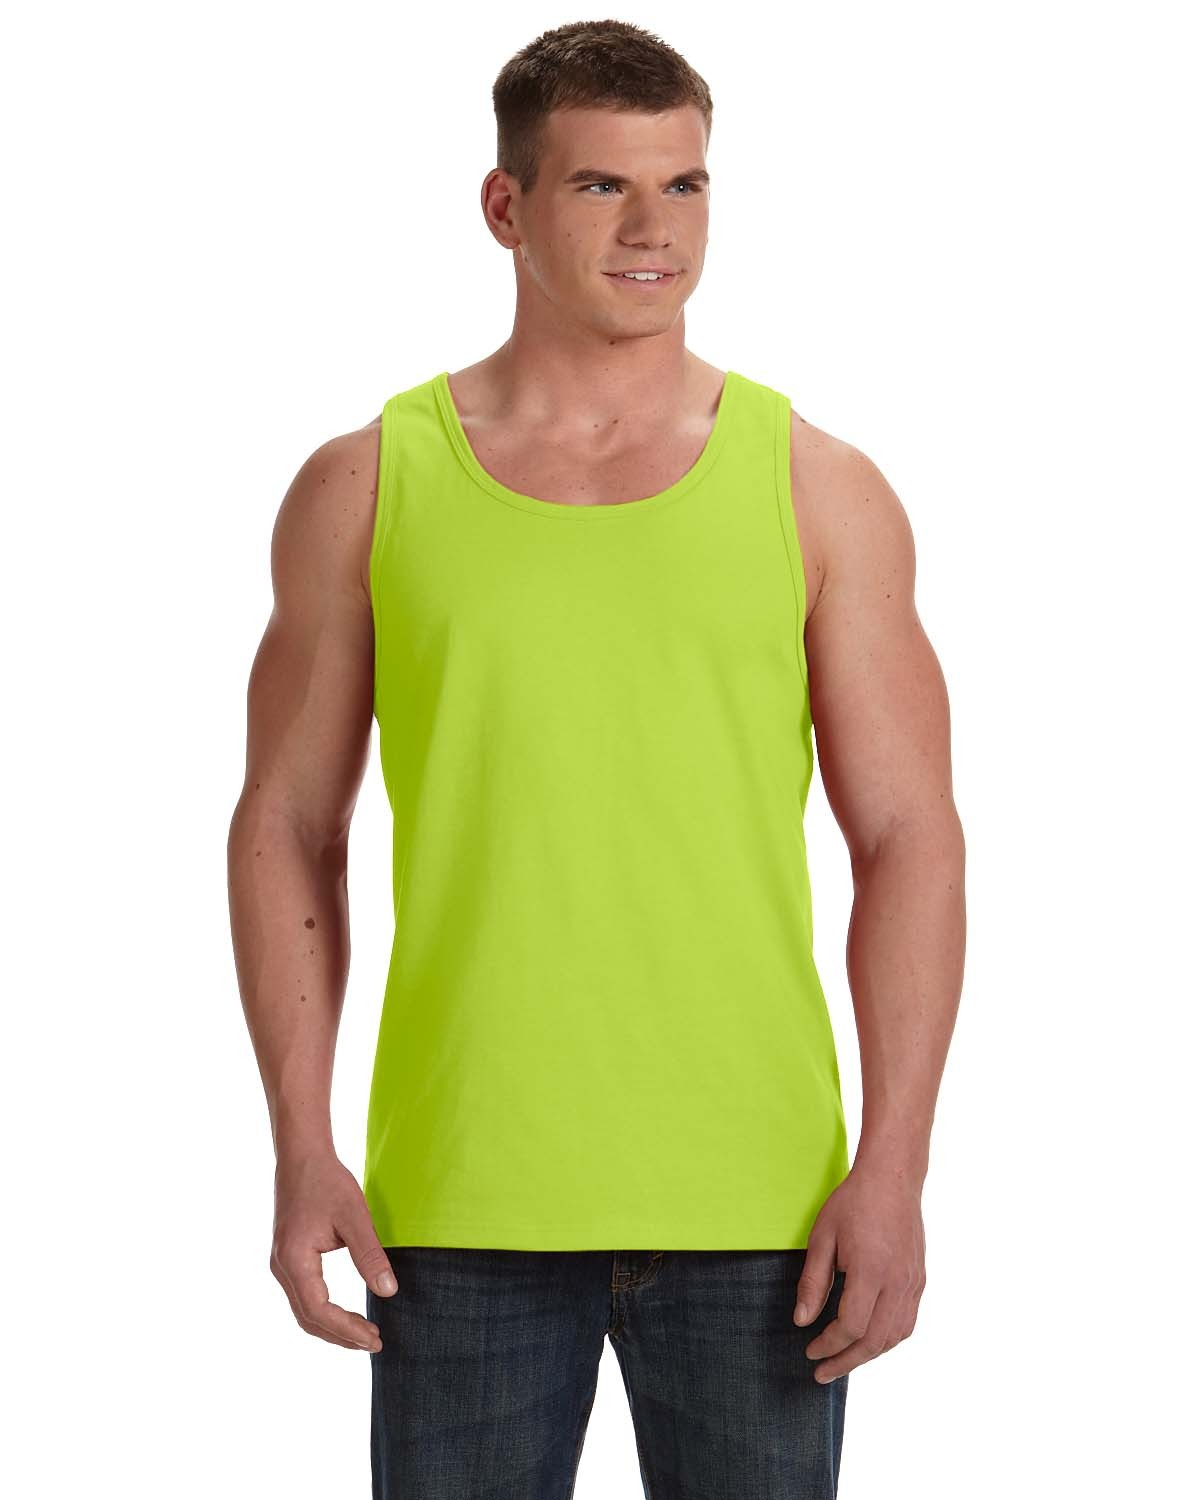 39TKR Fruit of the Loom SAFETY GREEN